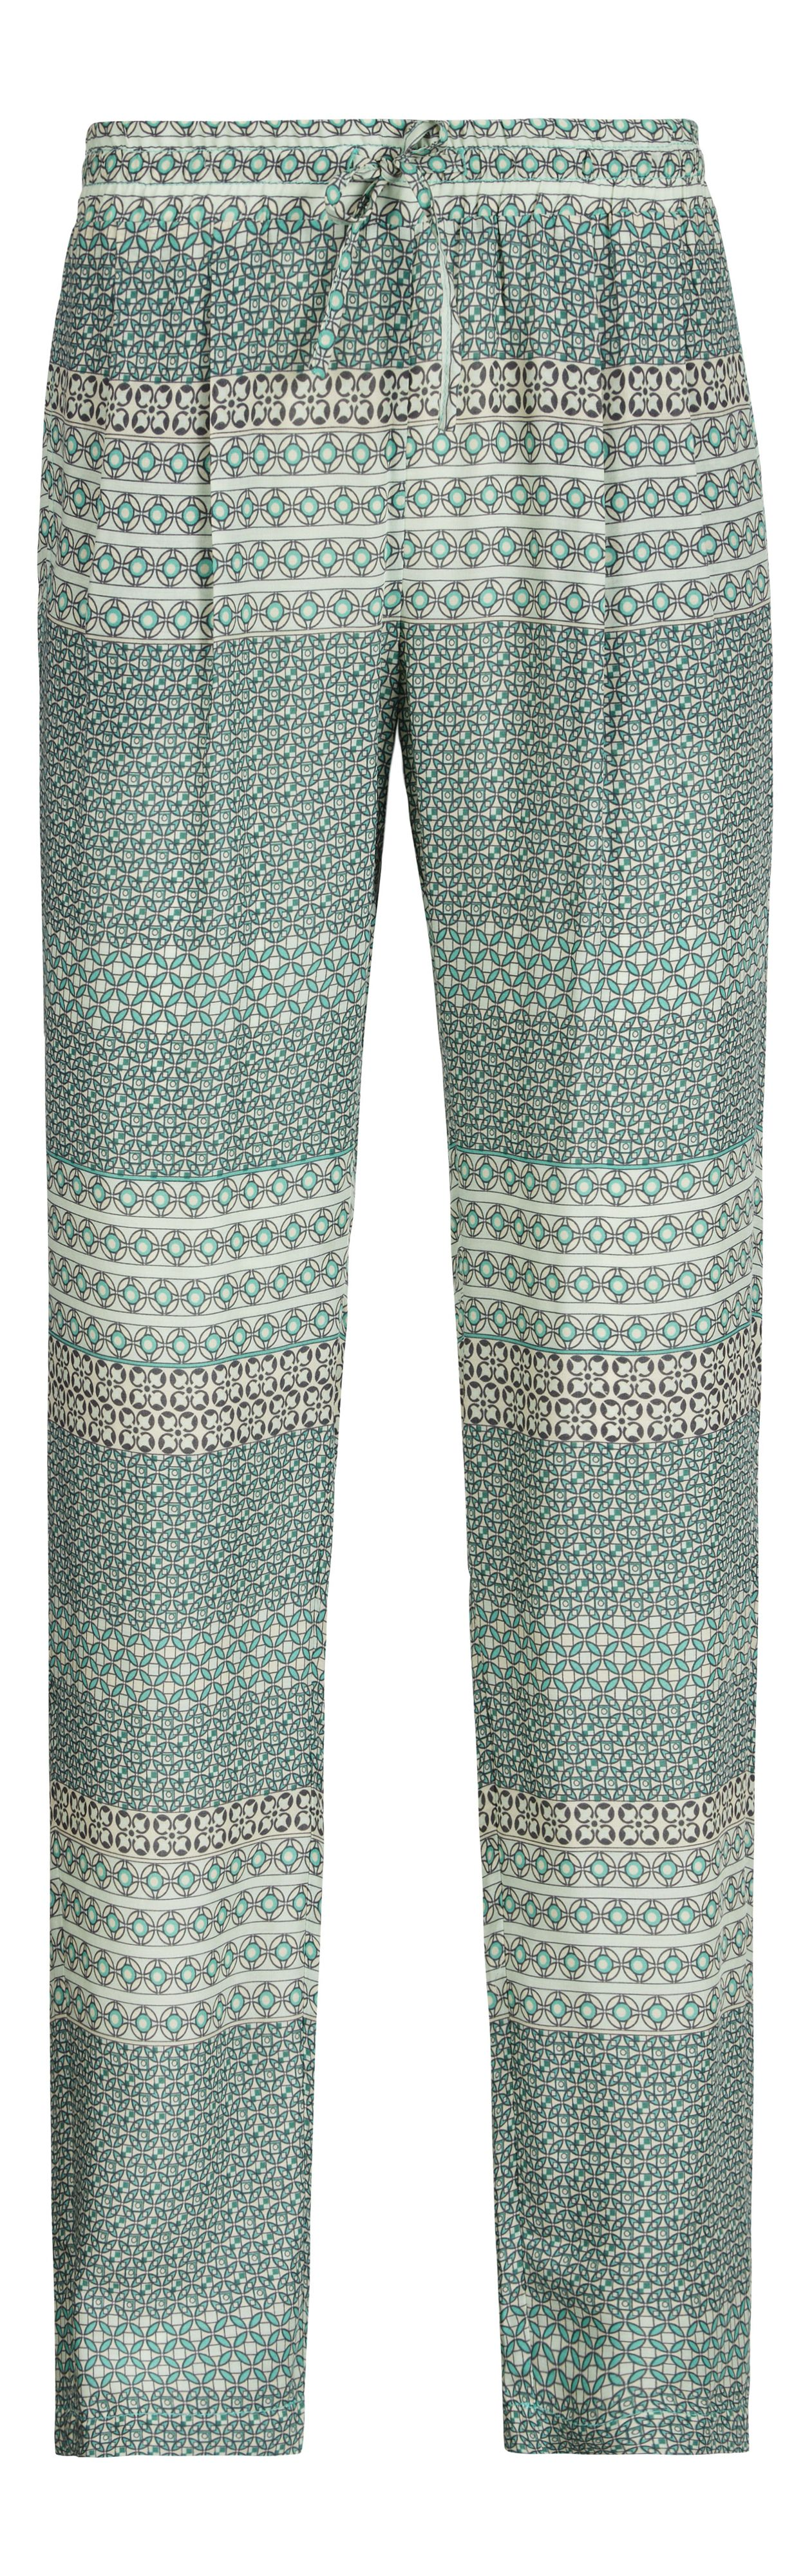 Fashion trousers